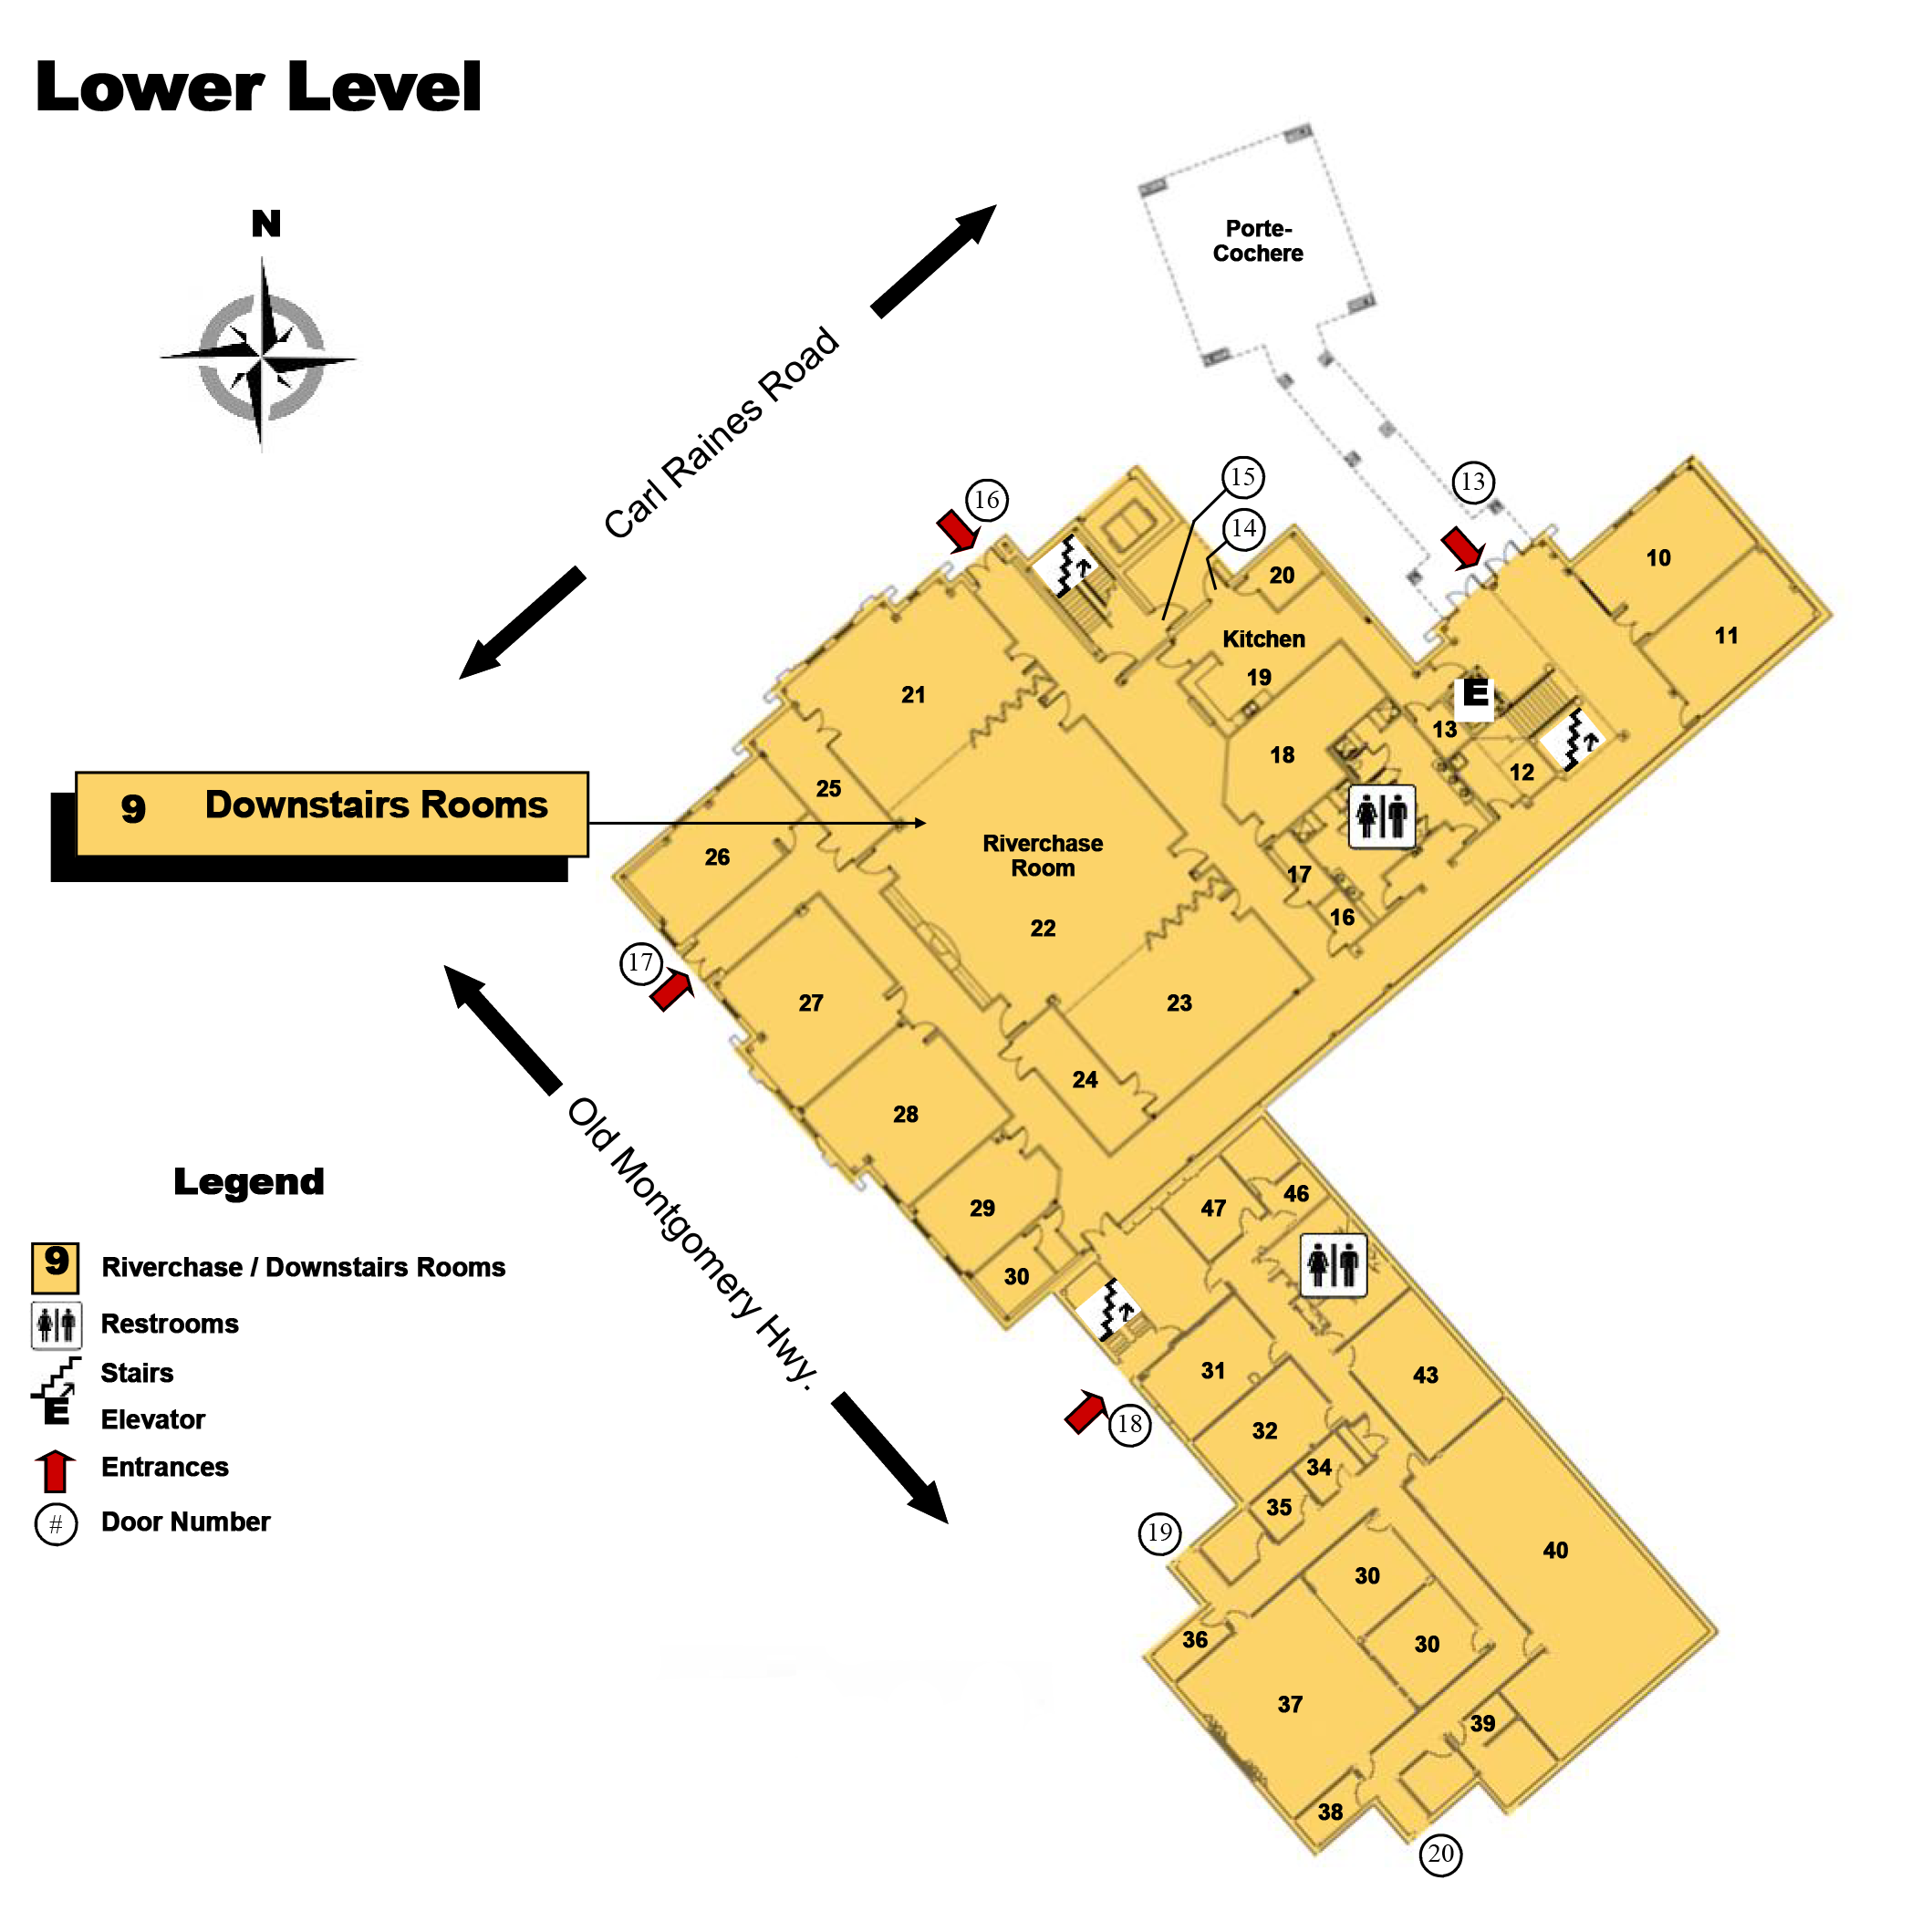 Lower Level Map.png